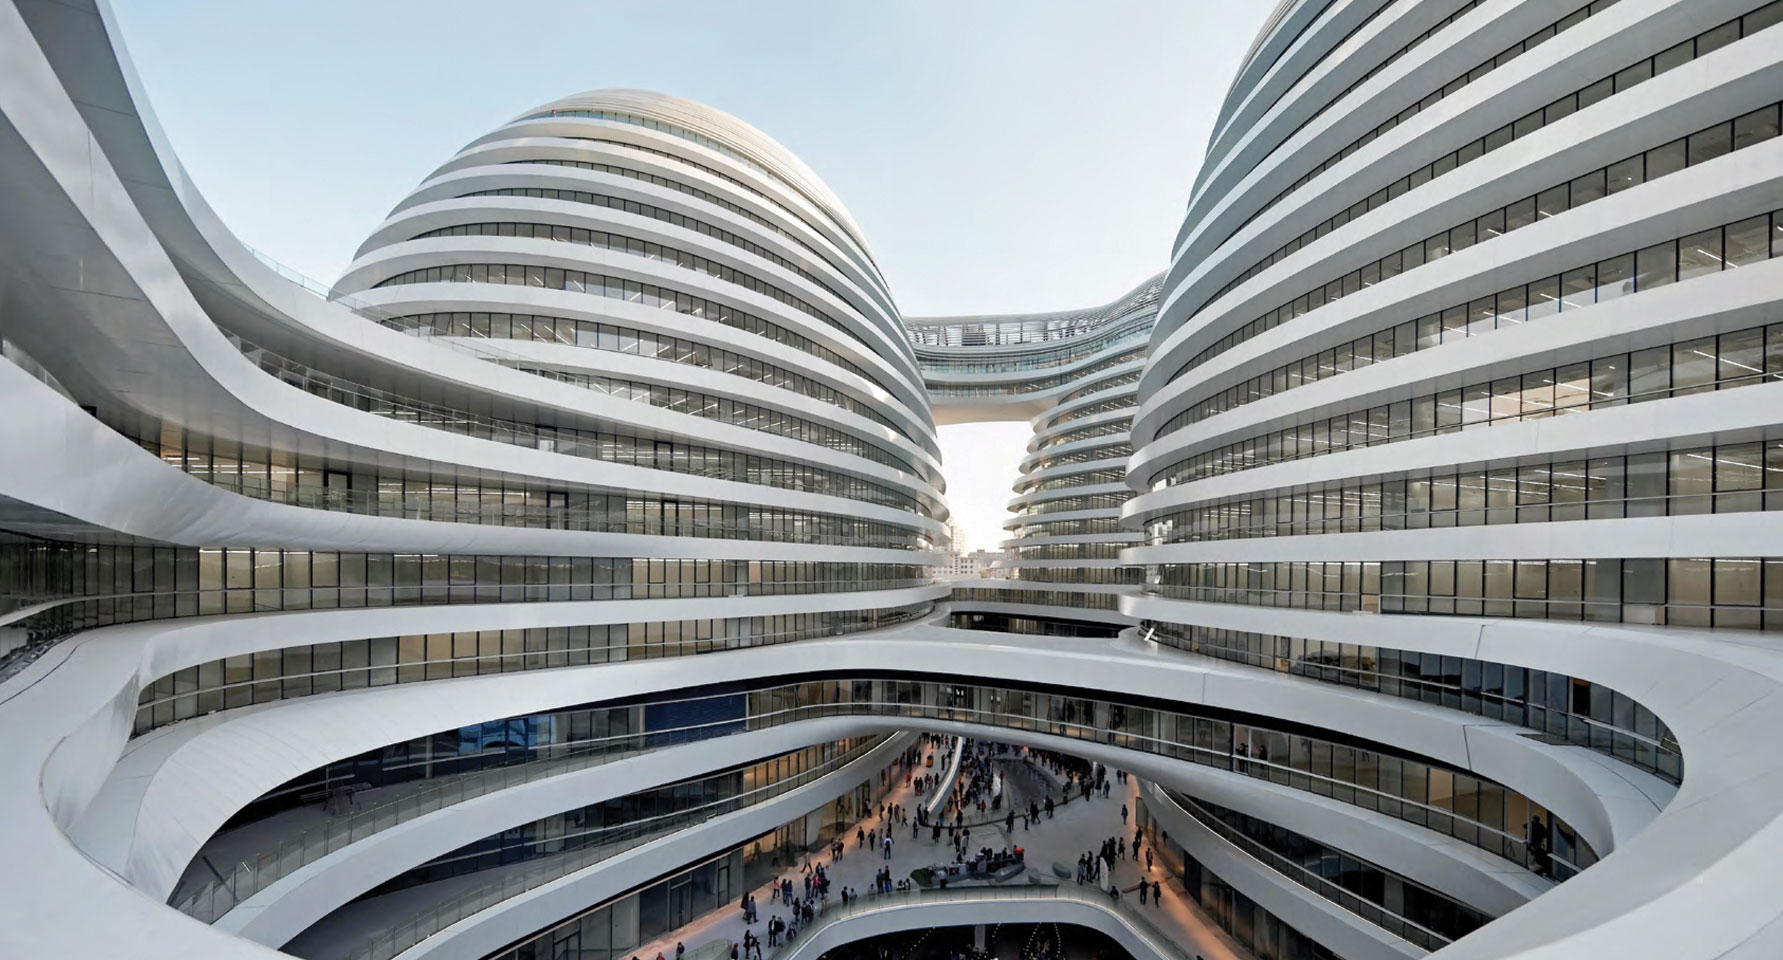 How Zaha Hadid, the 'Queen of the Curve' redefined our cities - CNN Style